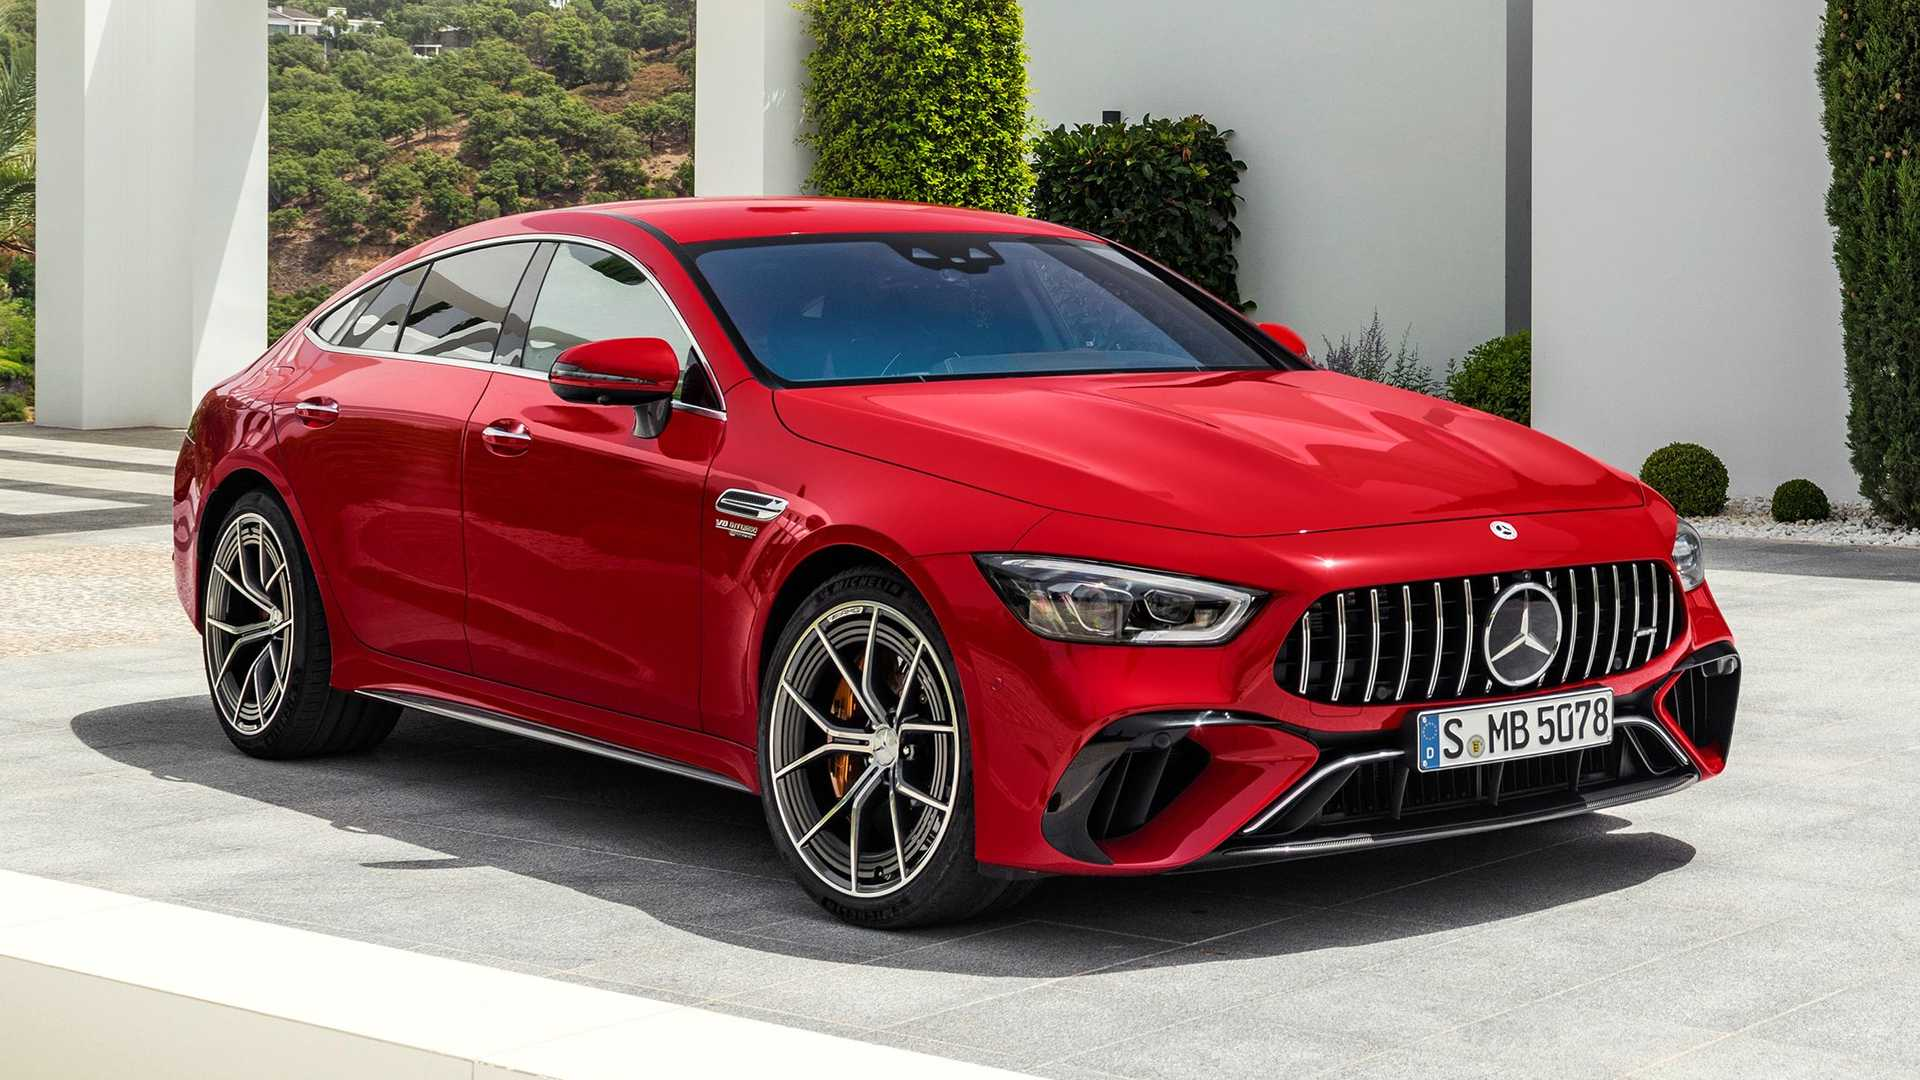 What If Mercedes Built Their Version Of A Hellcat? Oh Wait, They Are!